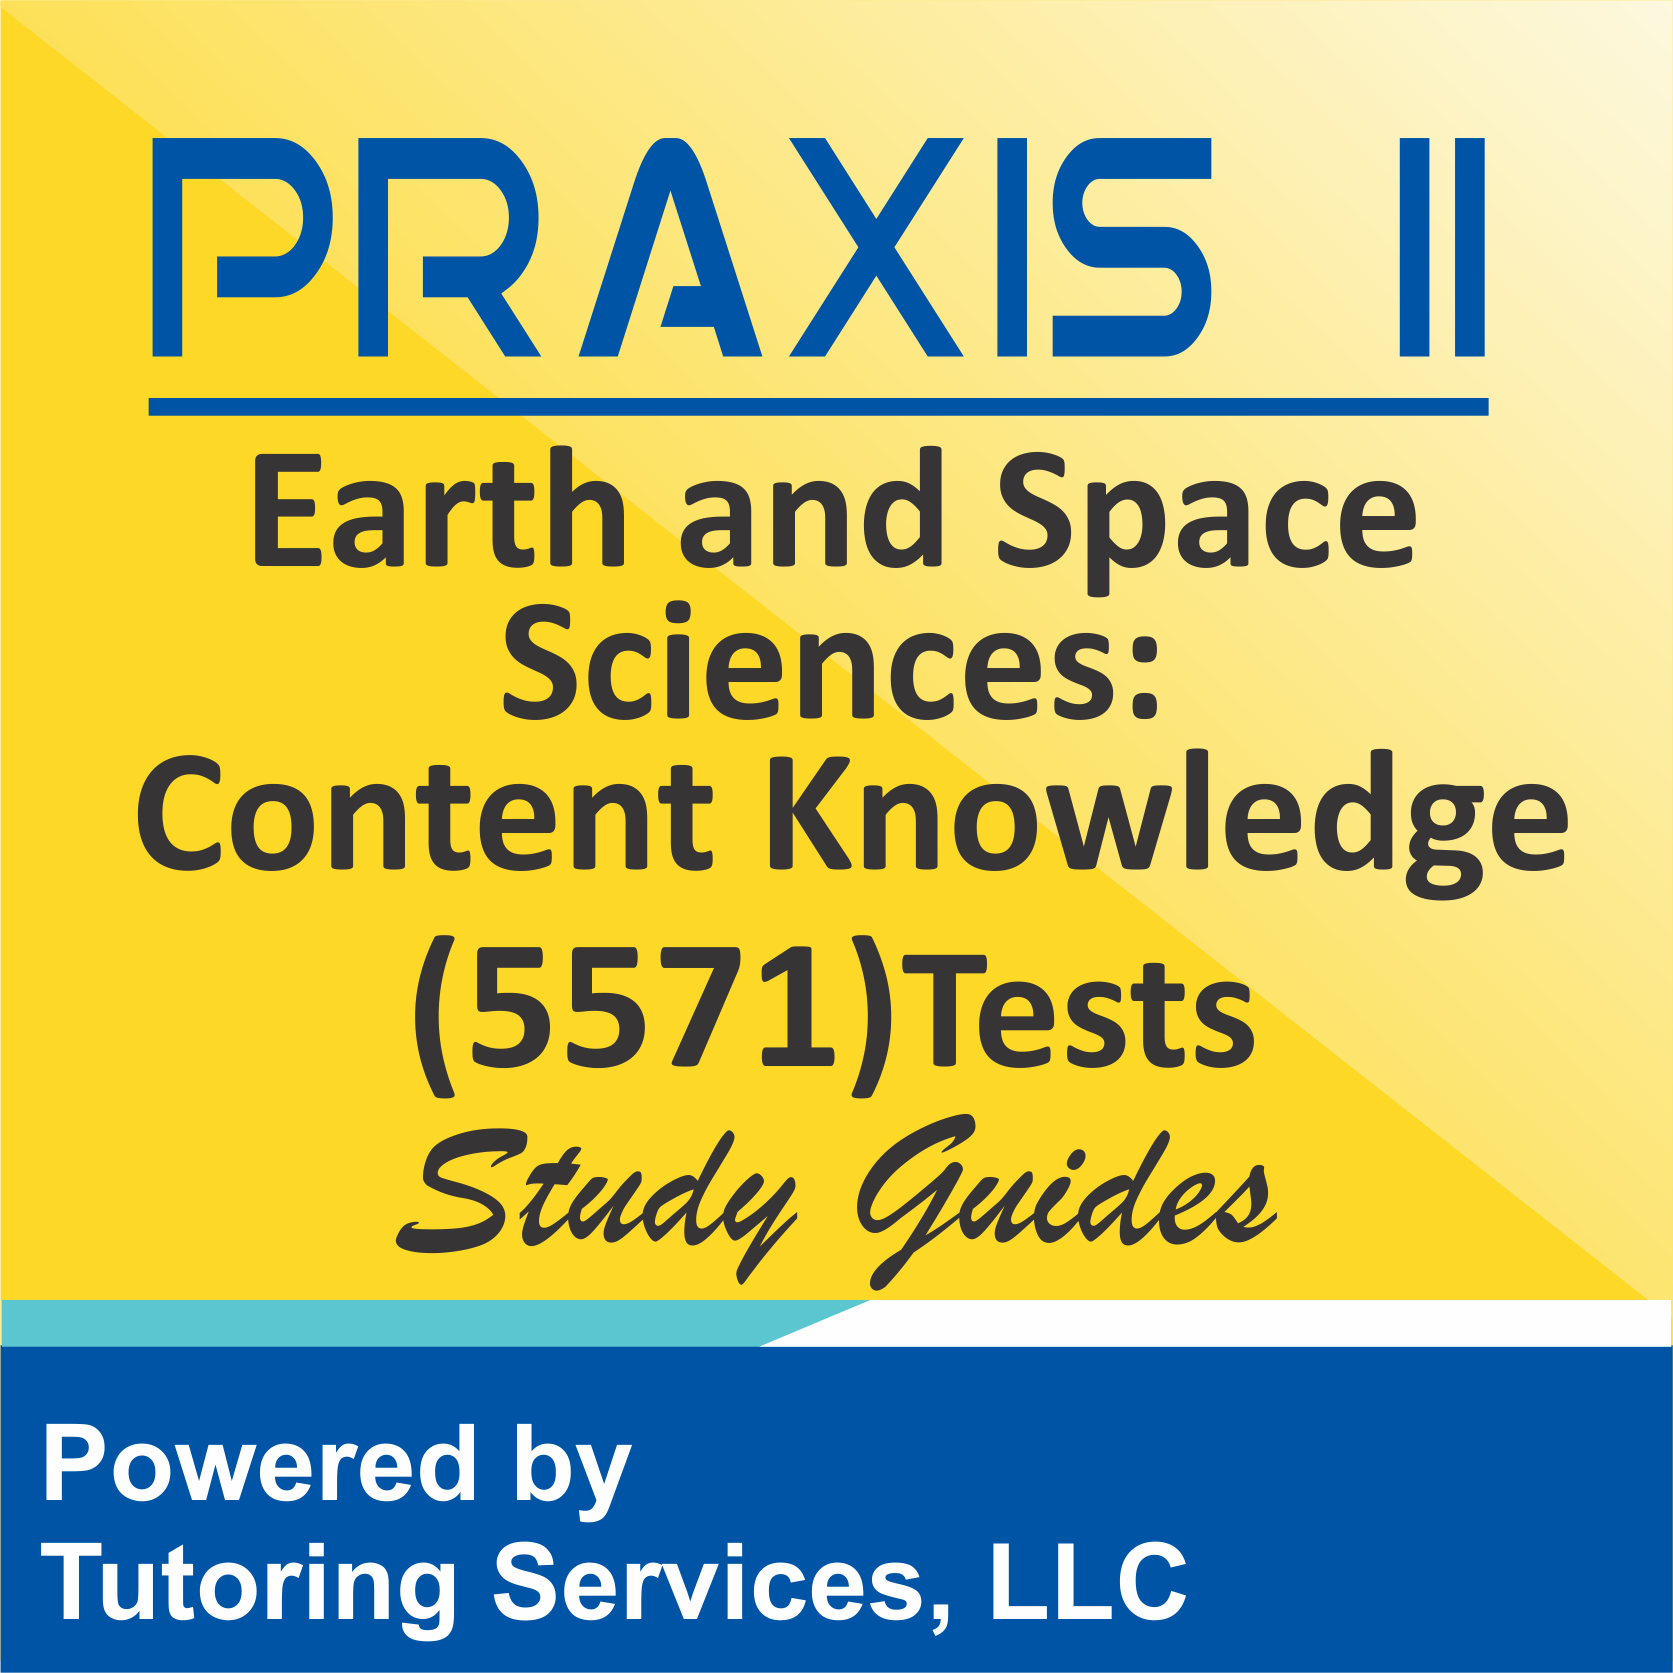 Praxis II Earth and Space Sciences: Content Knowledge (5571) Examination Ideas